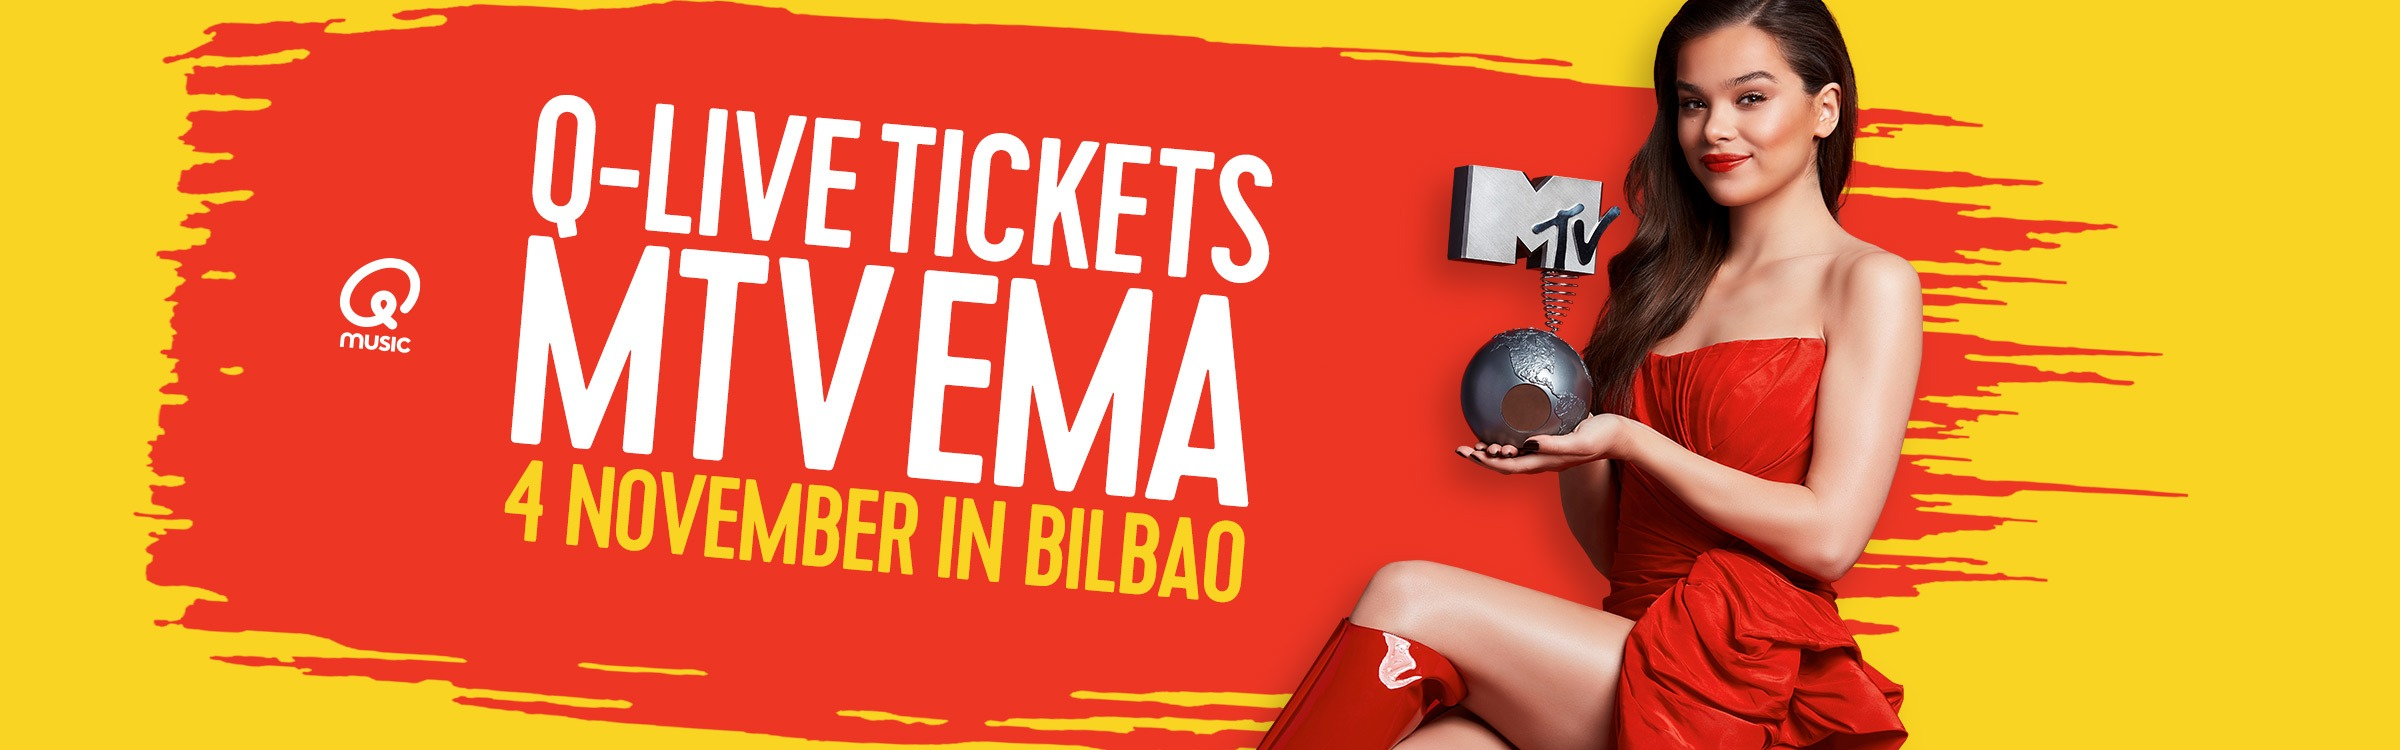 Tickets mtv ema bilbao header